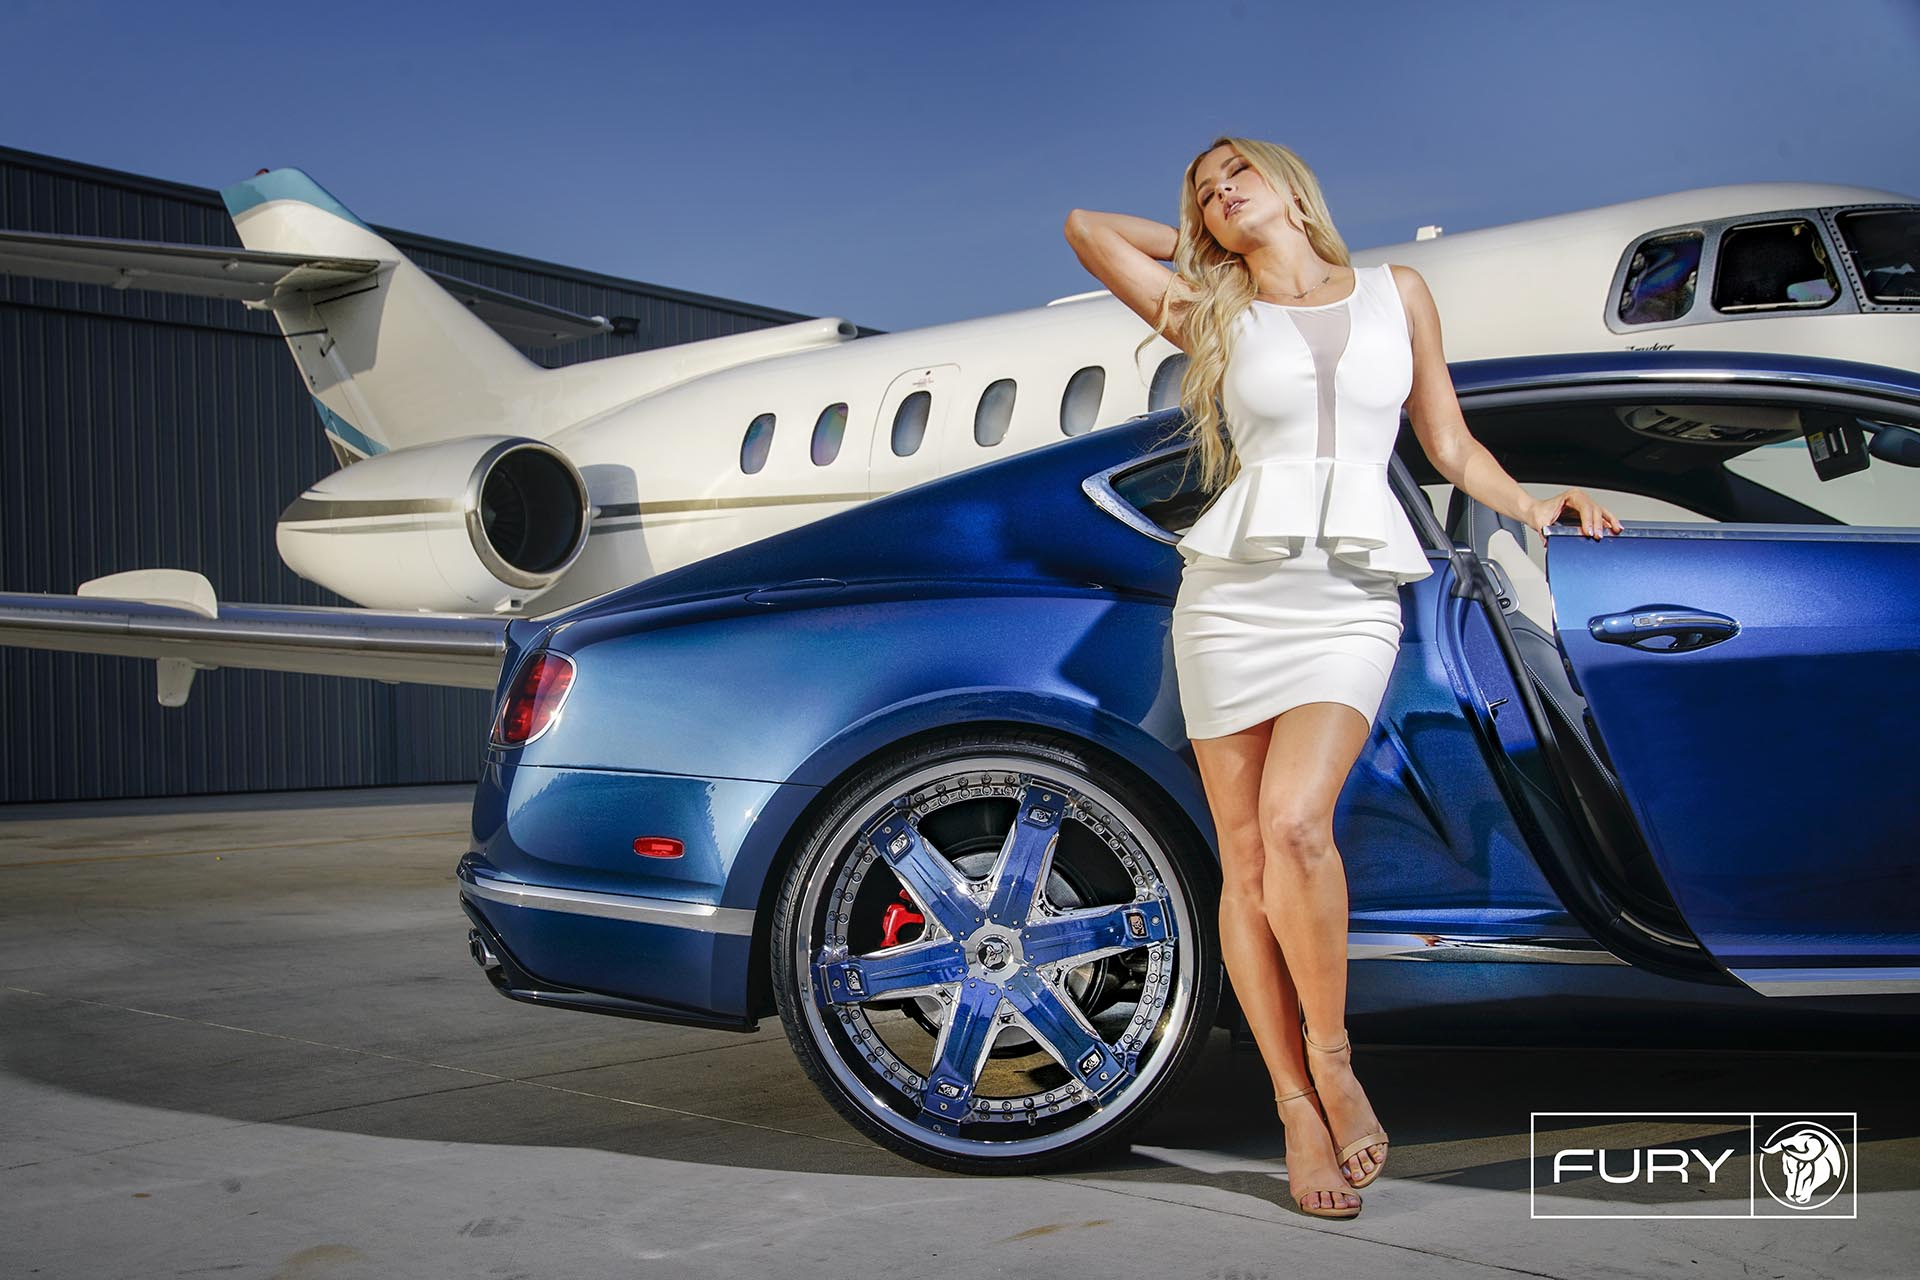 Chrome Diablo Fury Wheels on a Bentley Continental - Featuring Lina Posada